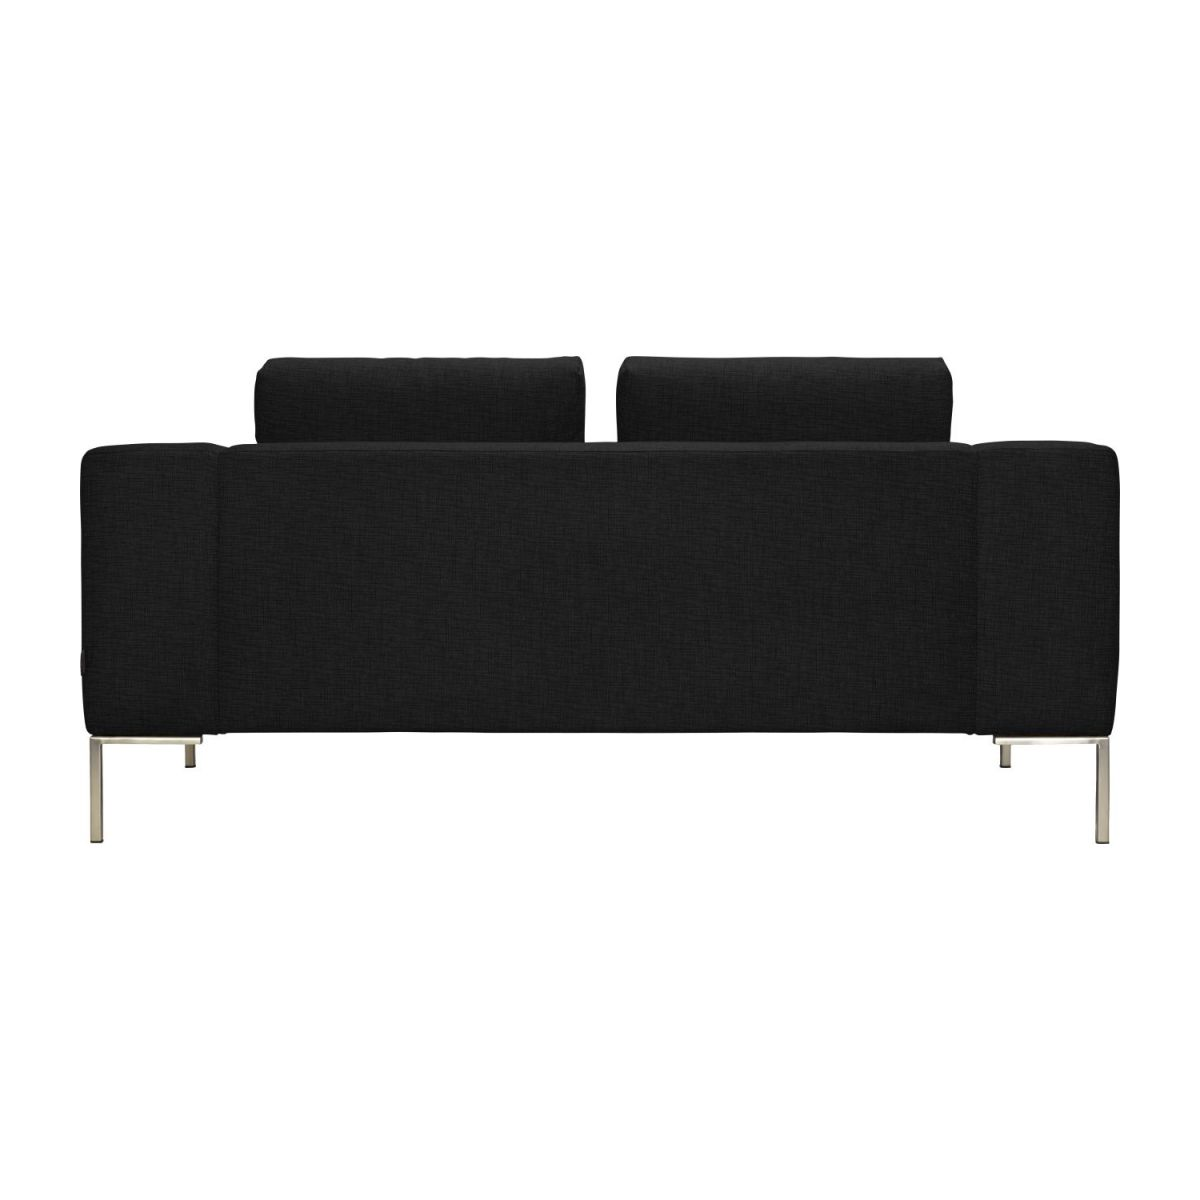 2 seater sofa in Ancio fabric, nero n°5